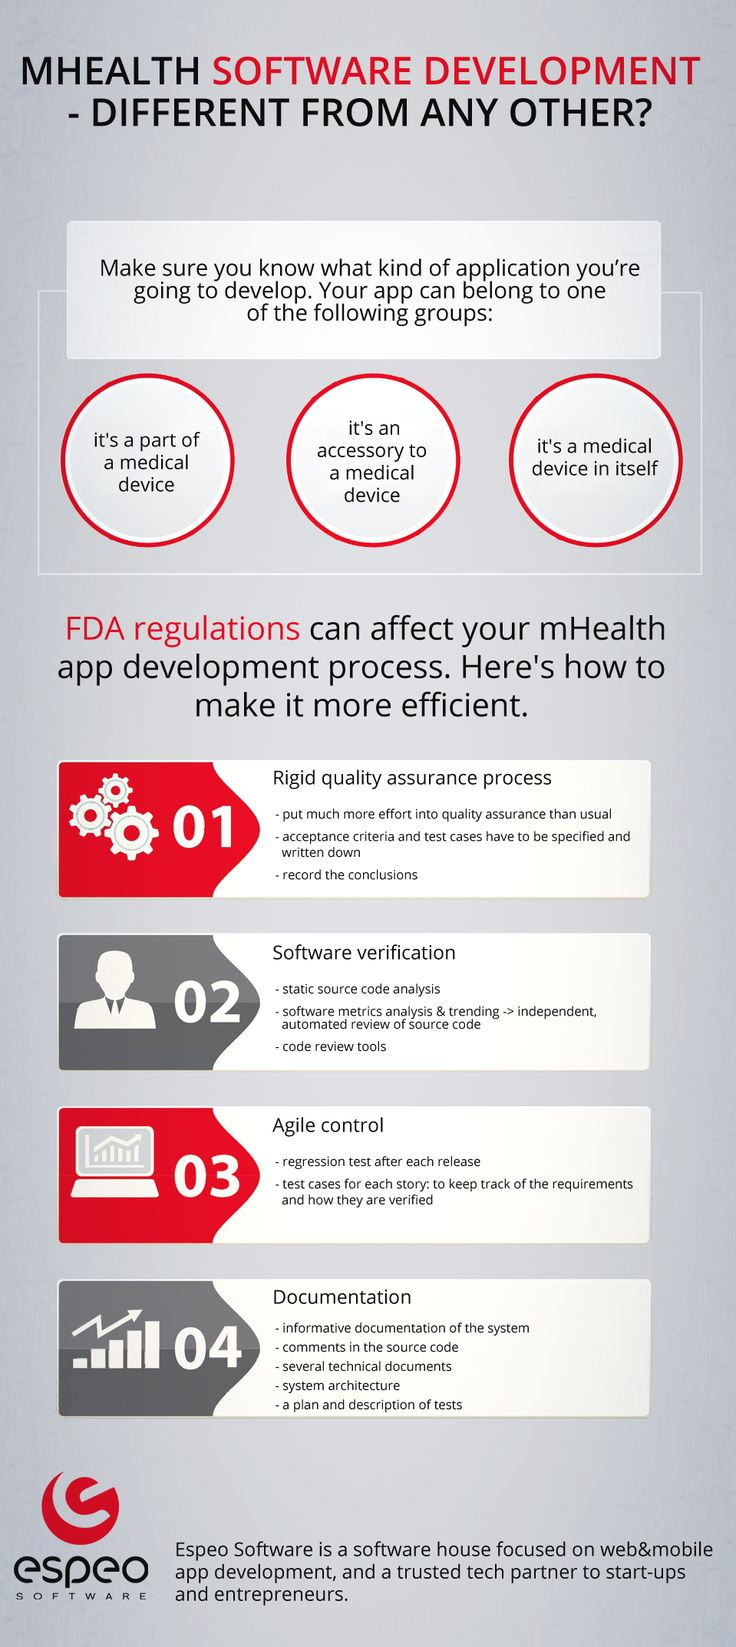 Some tips for #mHealth software development